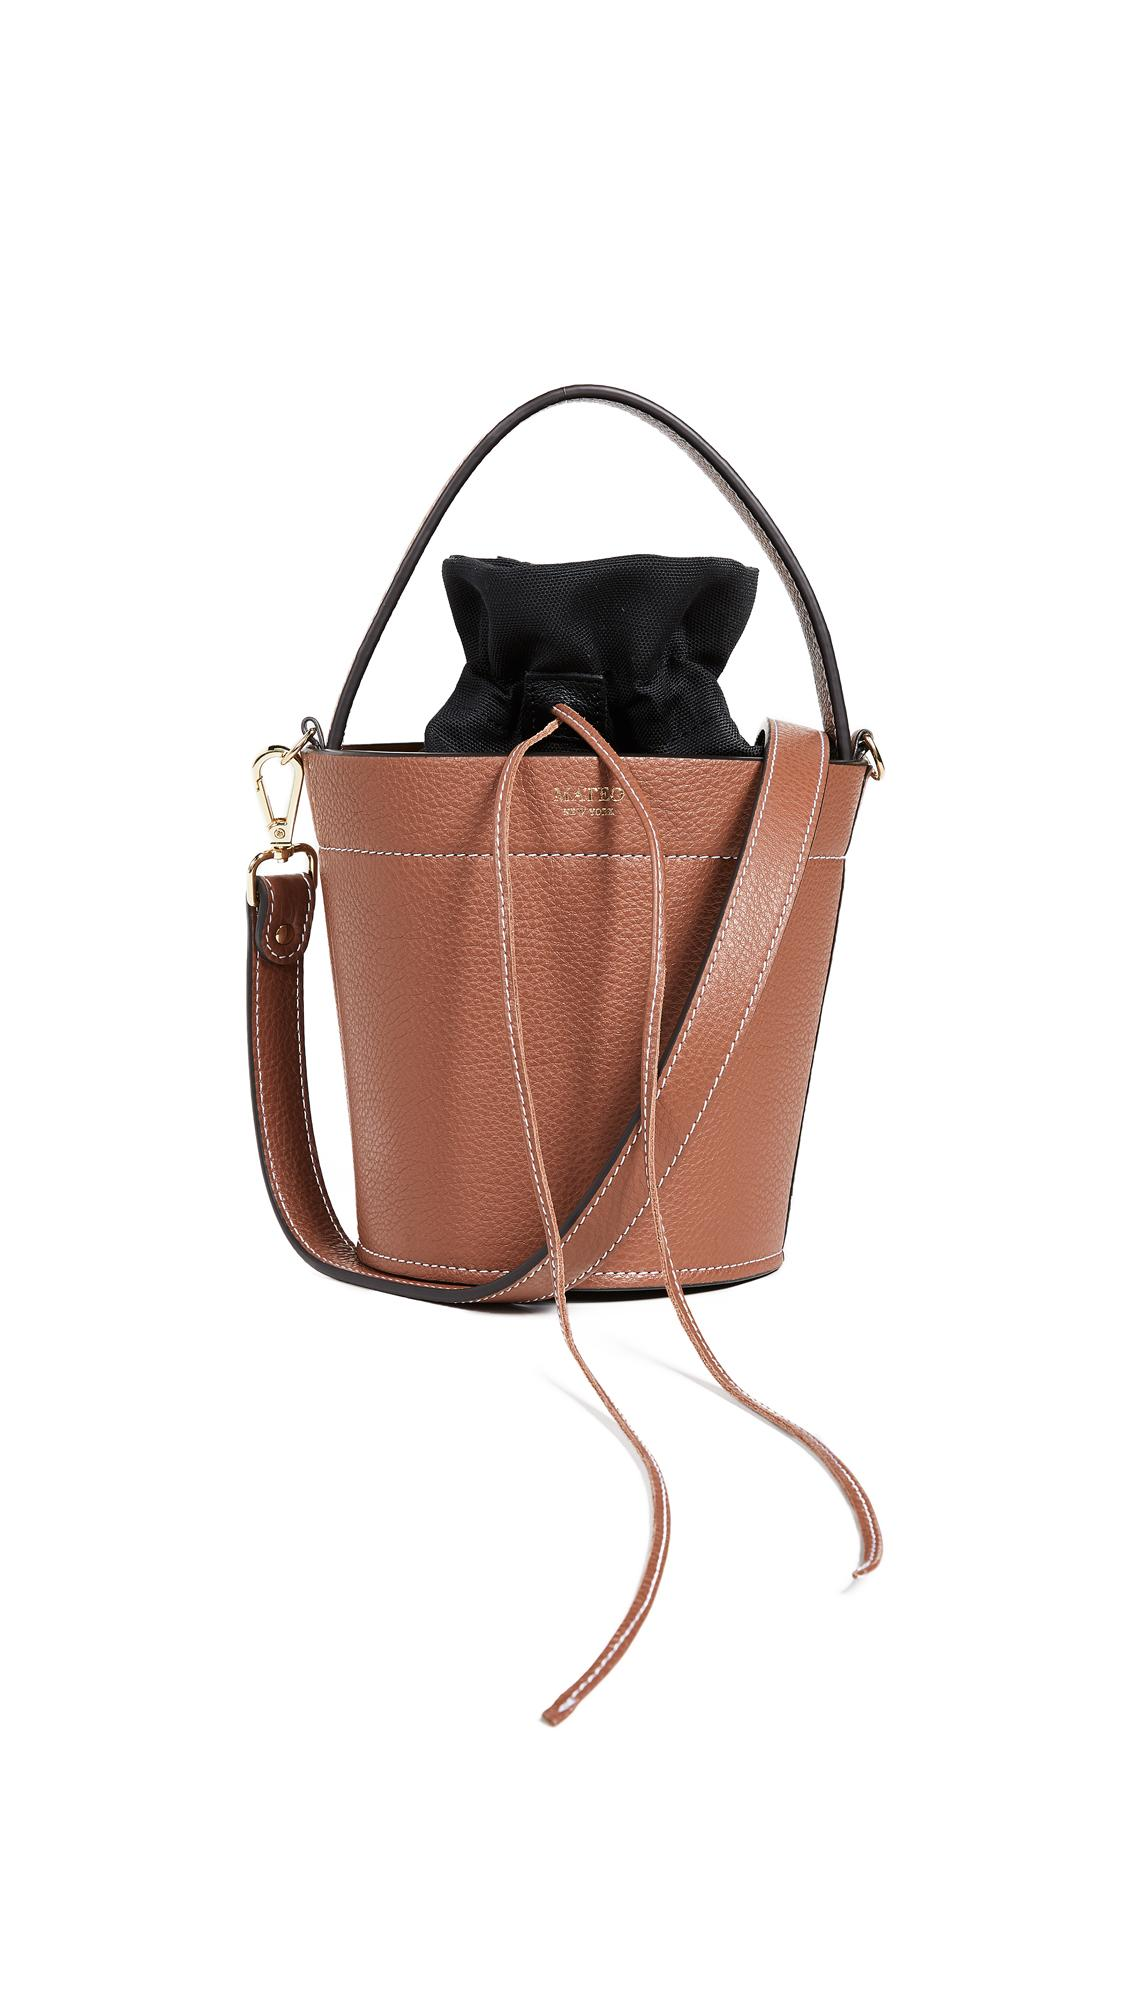 6c318a6727f9 Mateo The Madeline Bucket Bag In Cognac